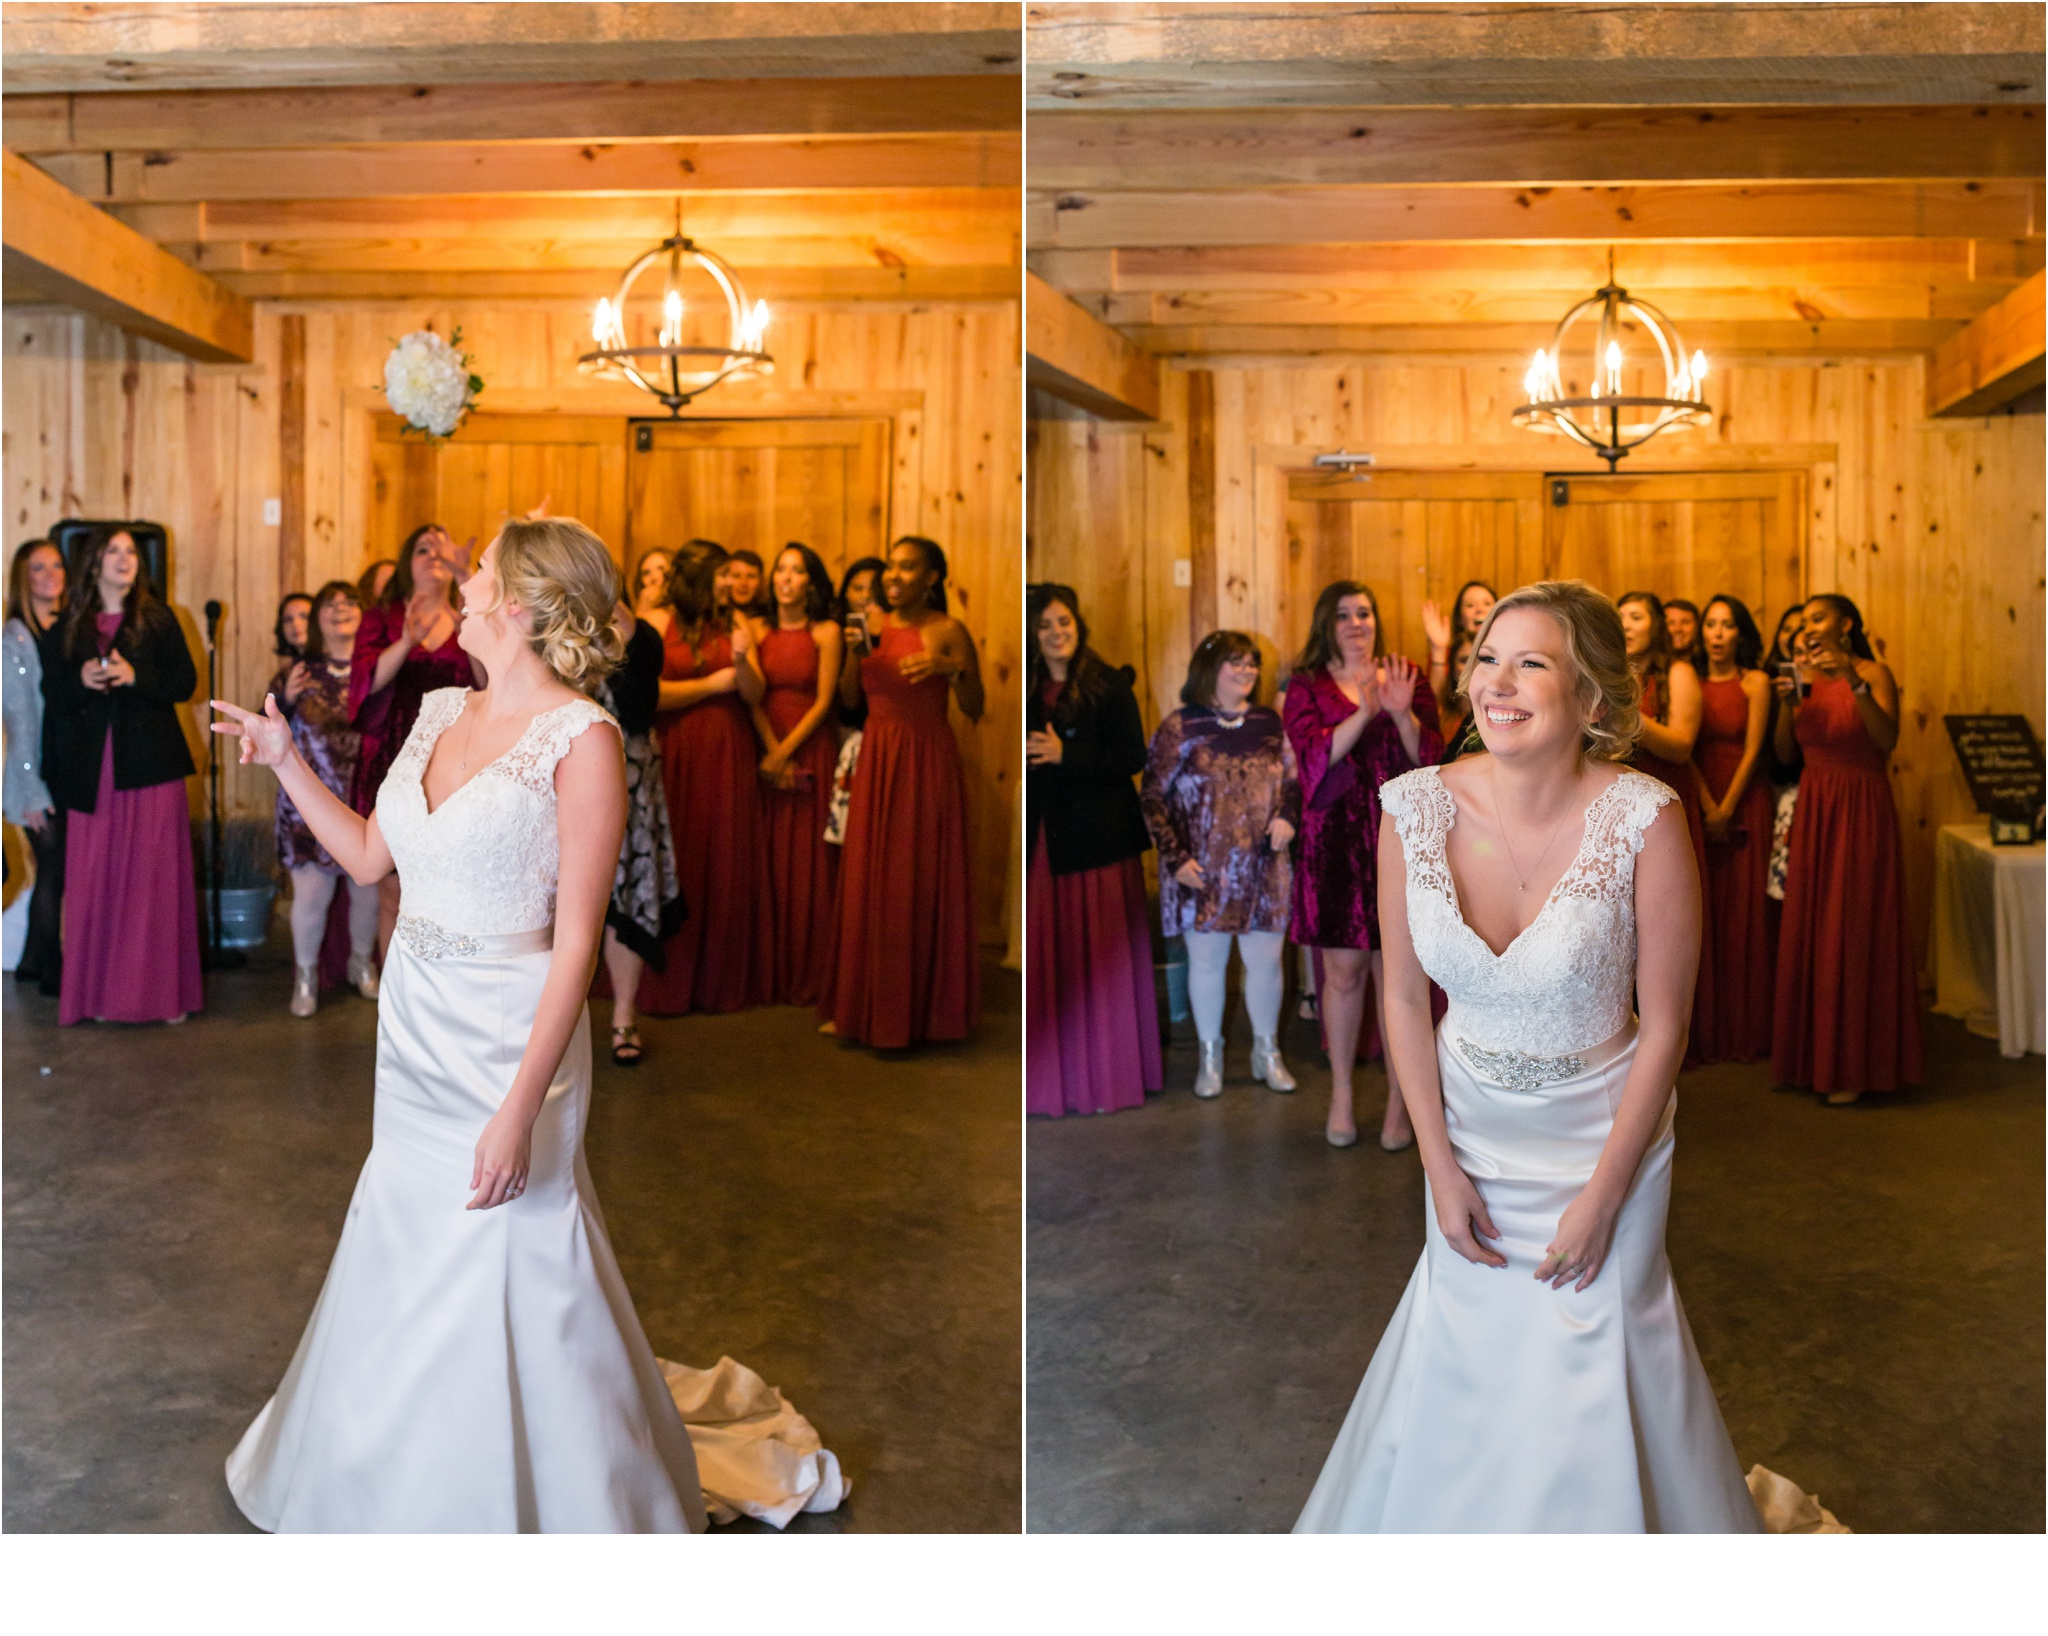 Rainey_Gregg_Photography_St._Simons_Island_Georgia_California_Wedding_Portrait_Photography_0541.jpg